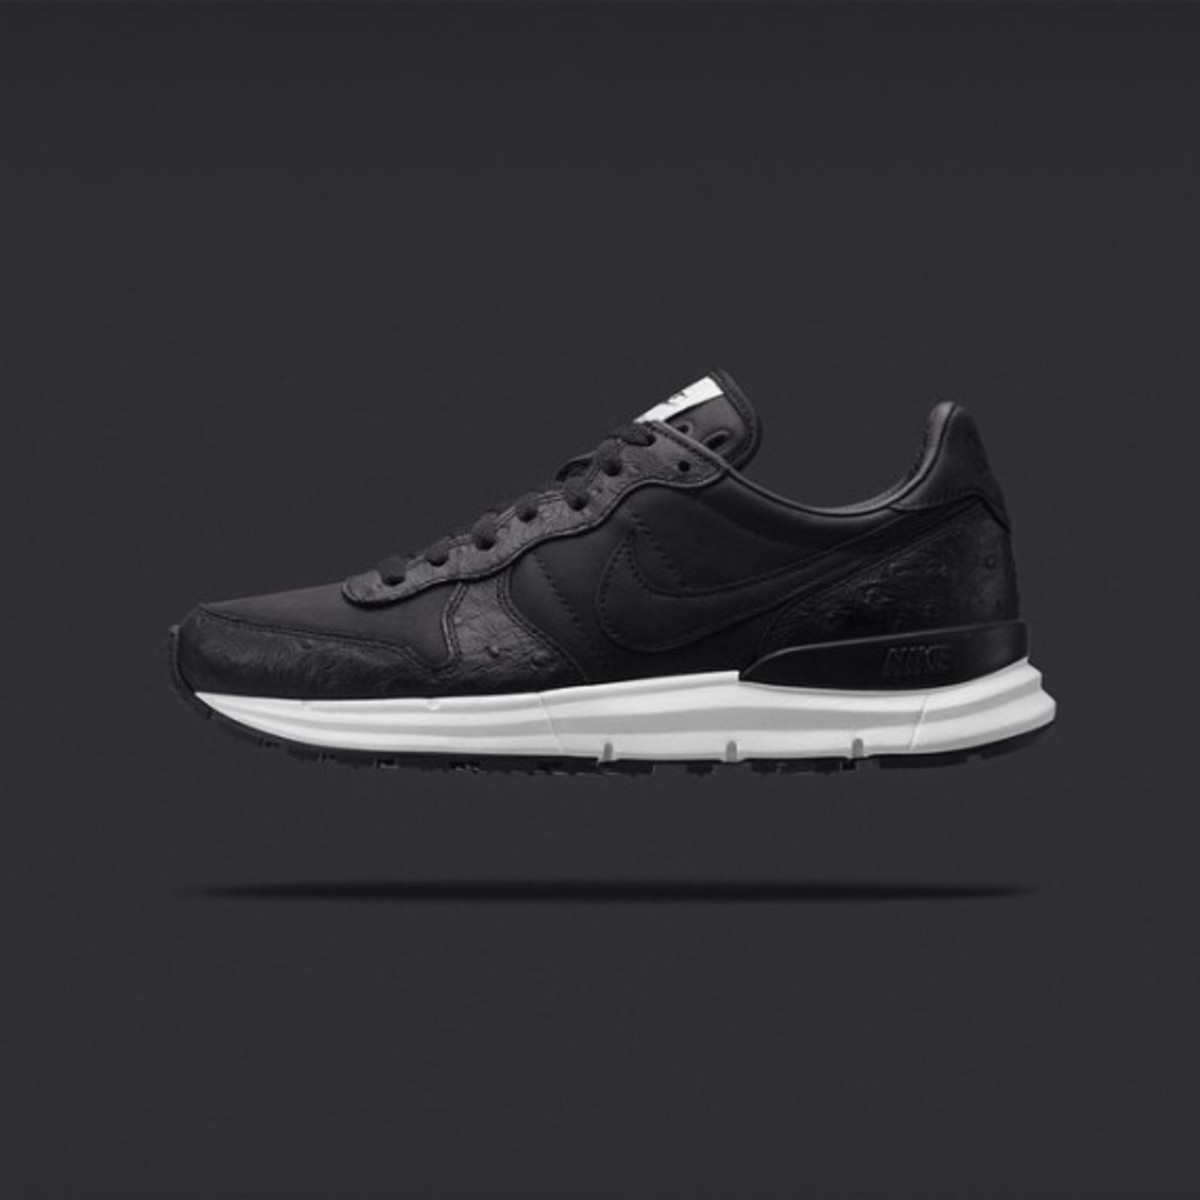 soph-nike-lunar-internationalist-06